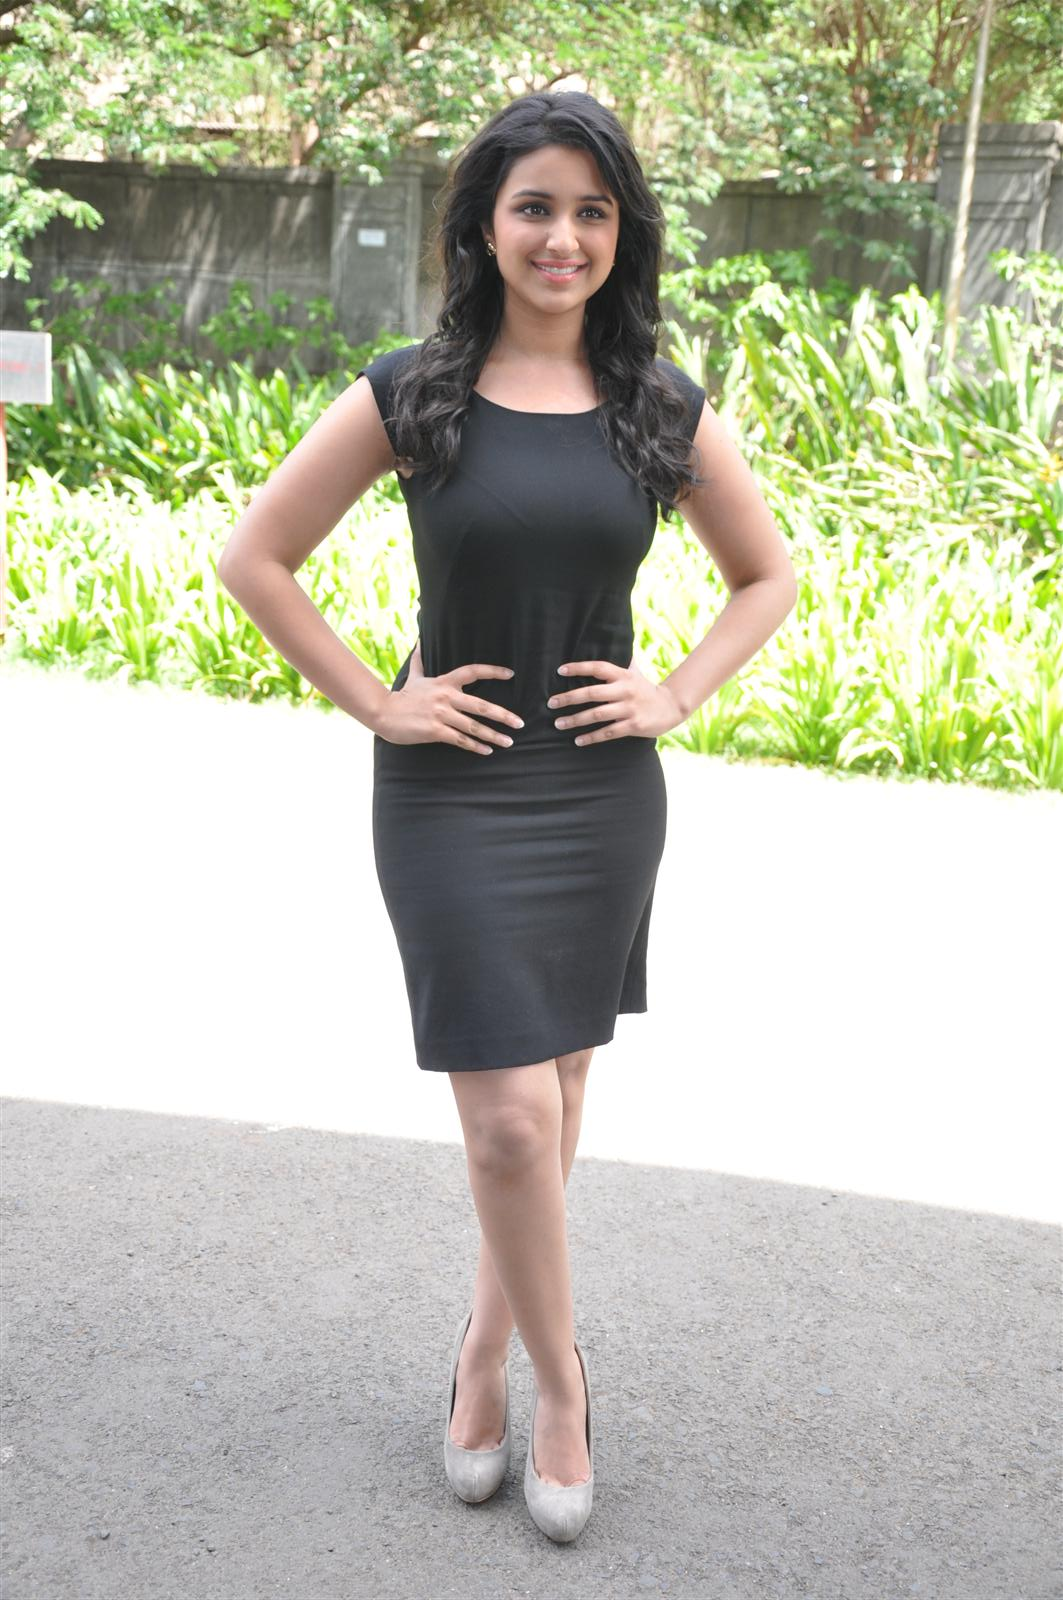 Parineeti Chopra Looks Sexy In Black Skirt At The Bollywood's Century Celebration